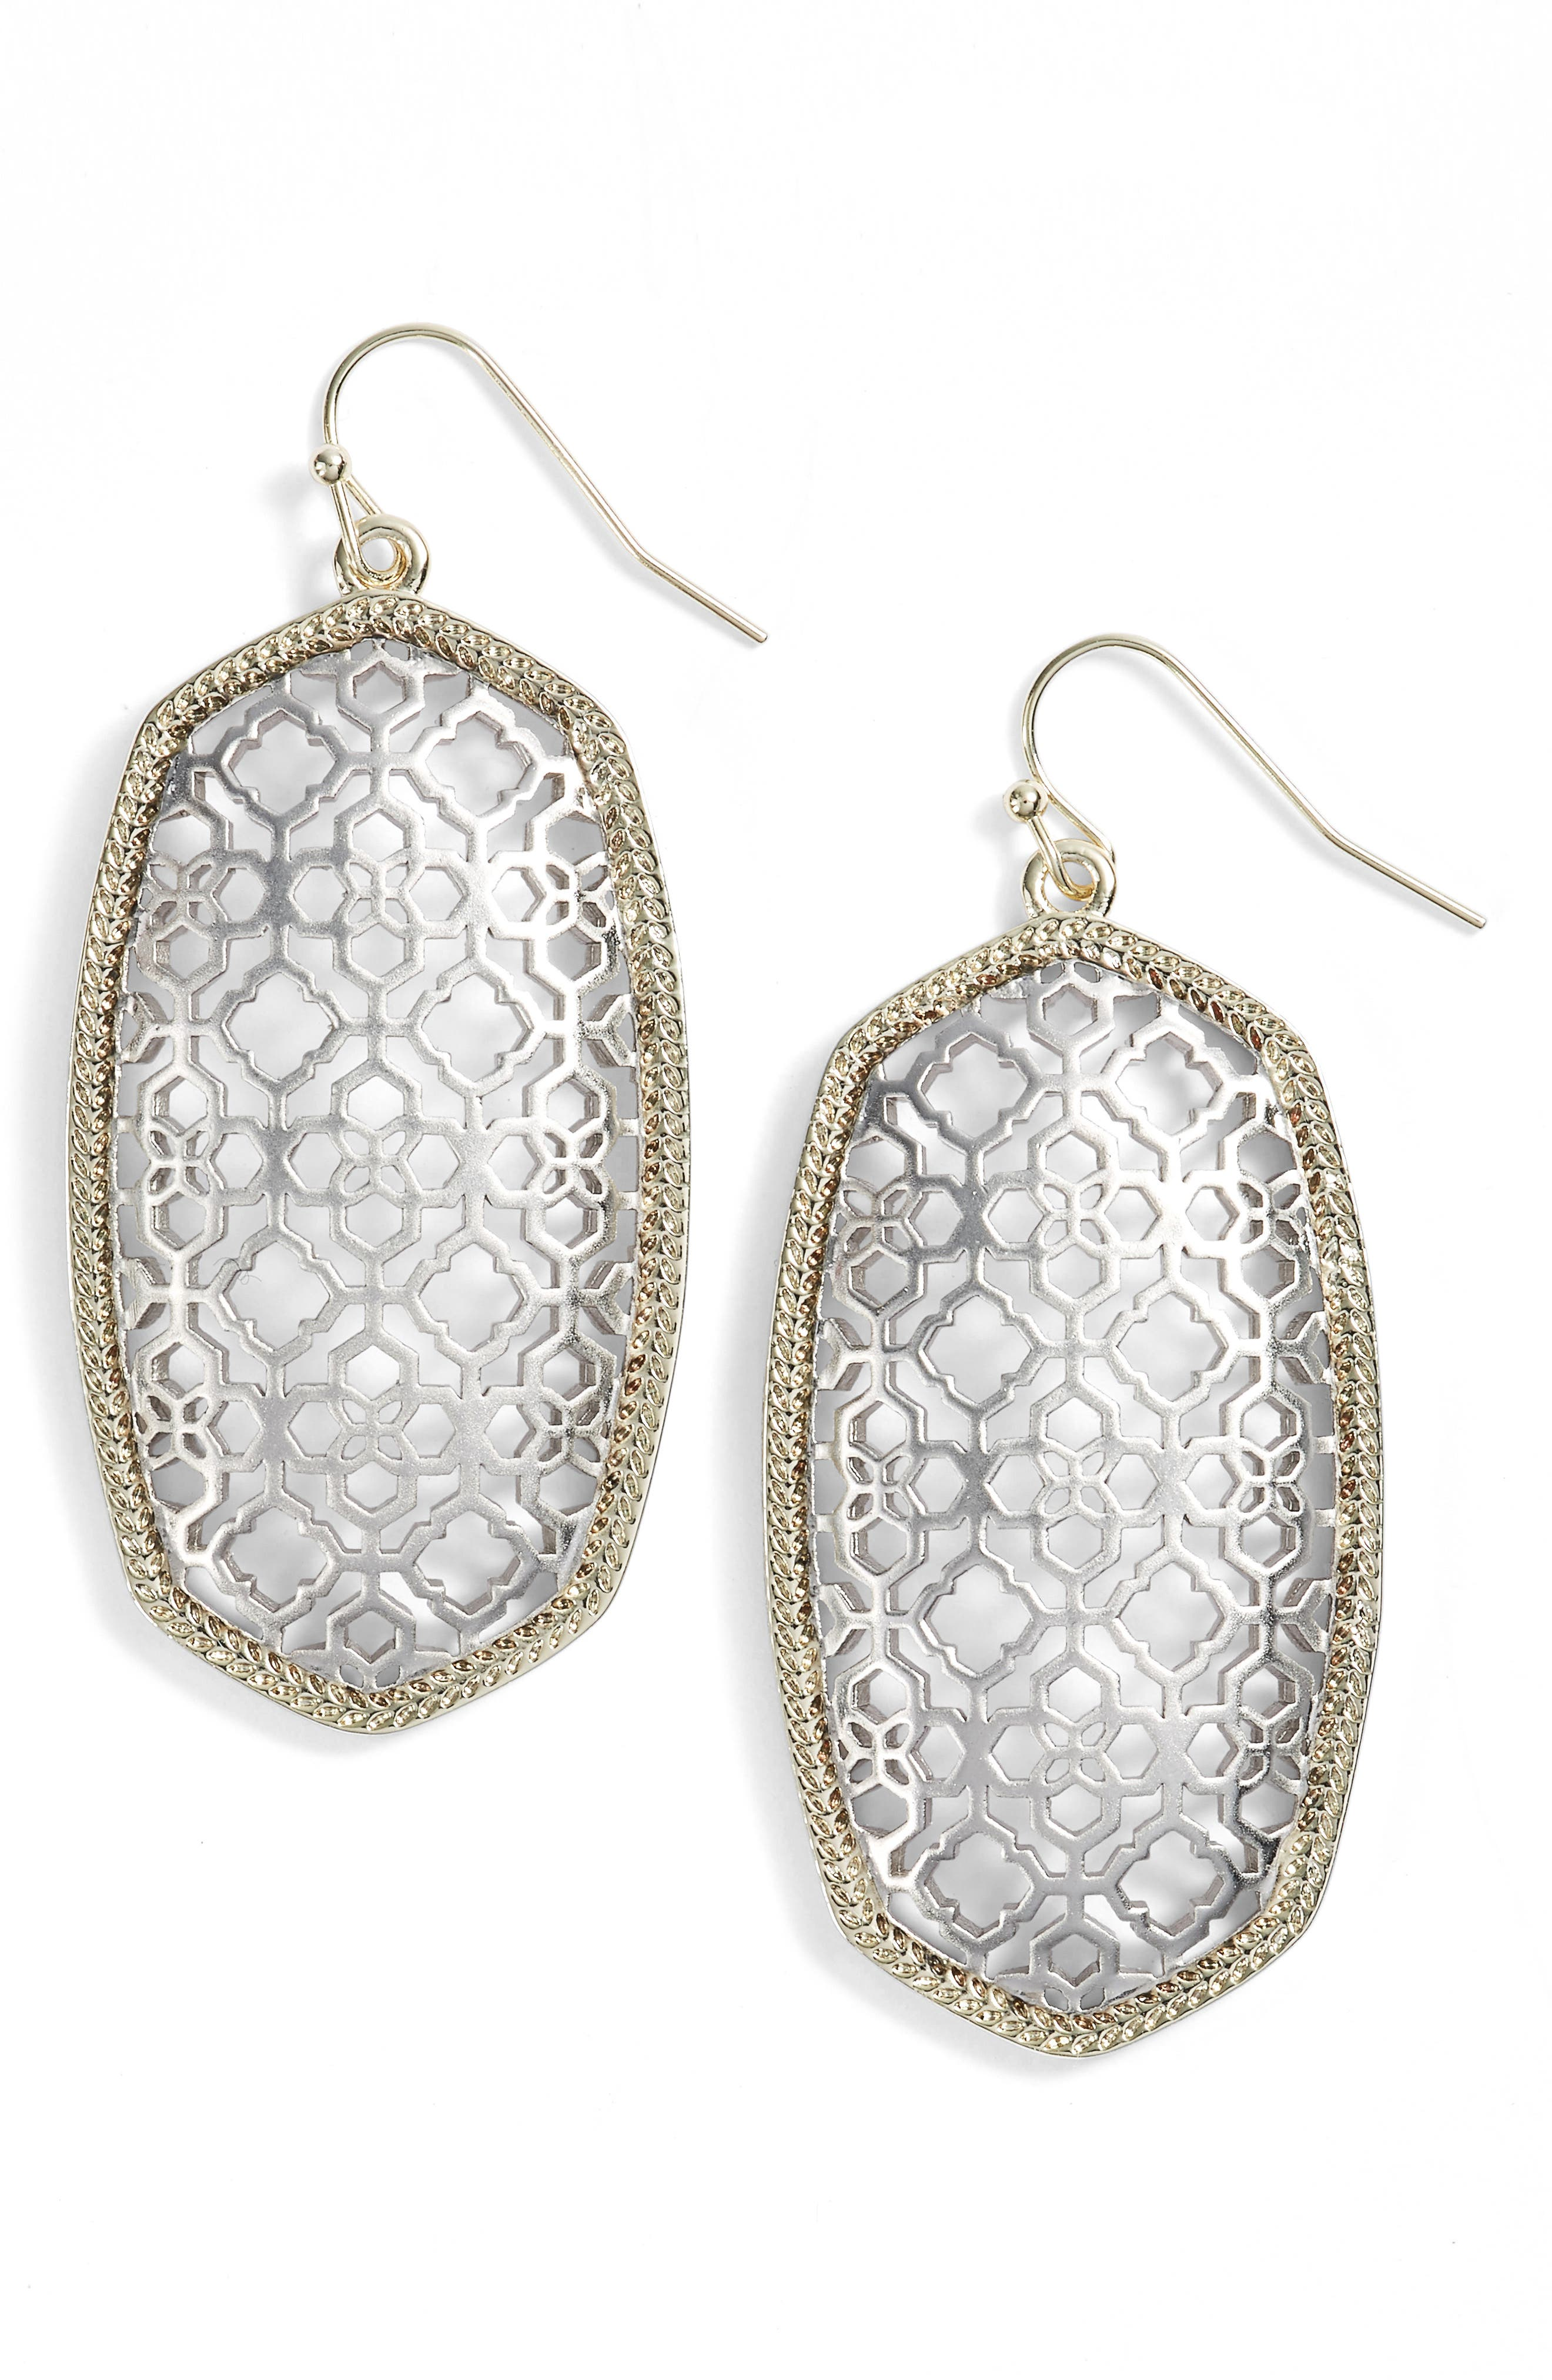 Danielle - Large Oval Statement Earrings,                             Main thumbnail 39, color,